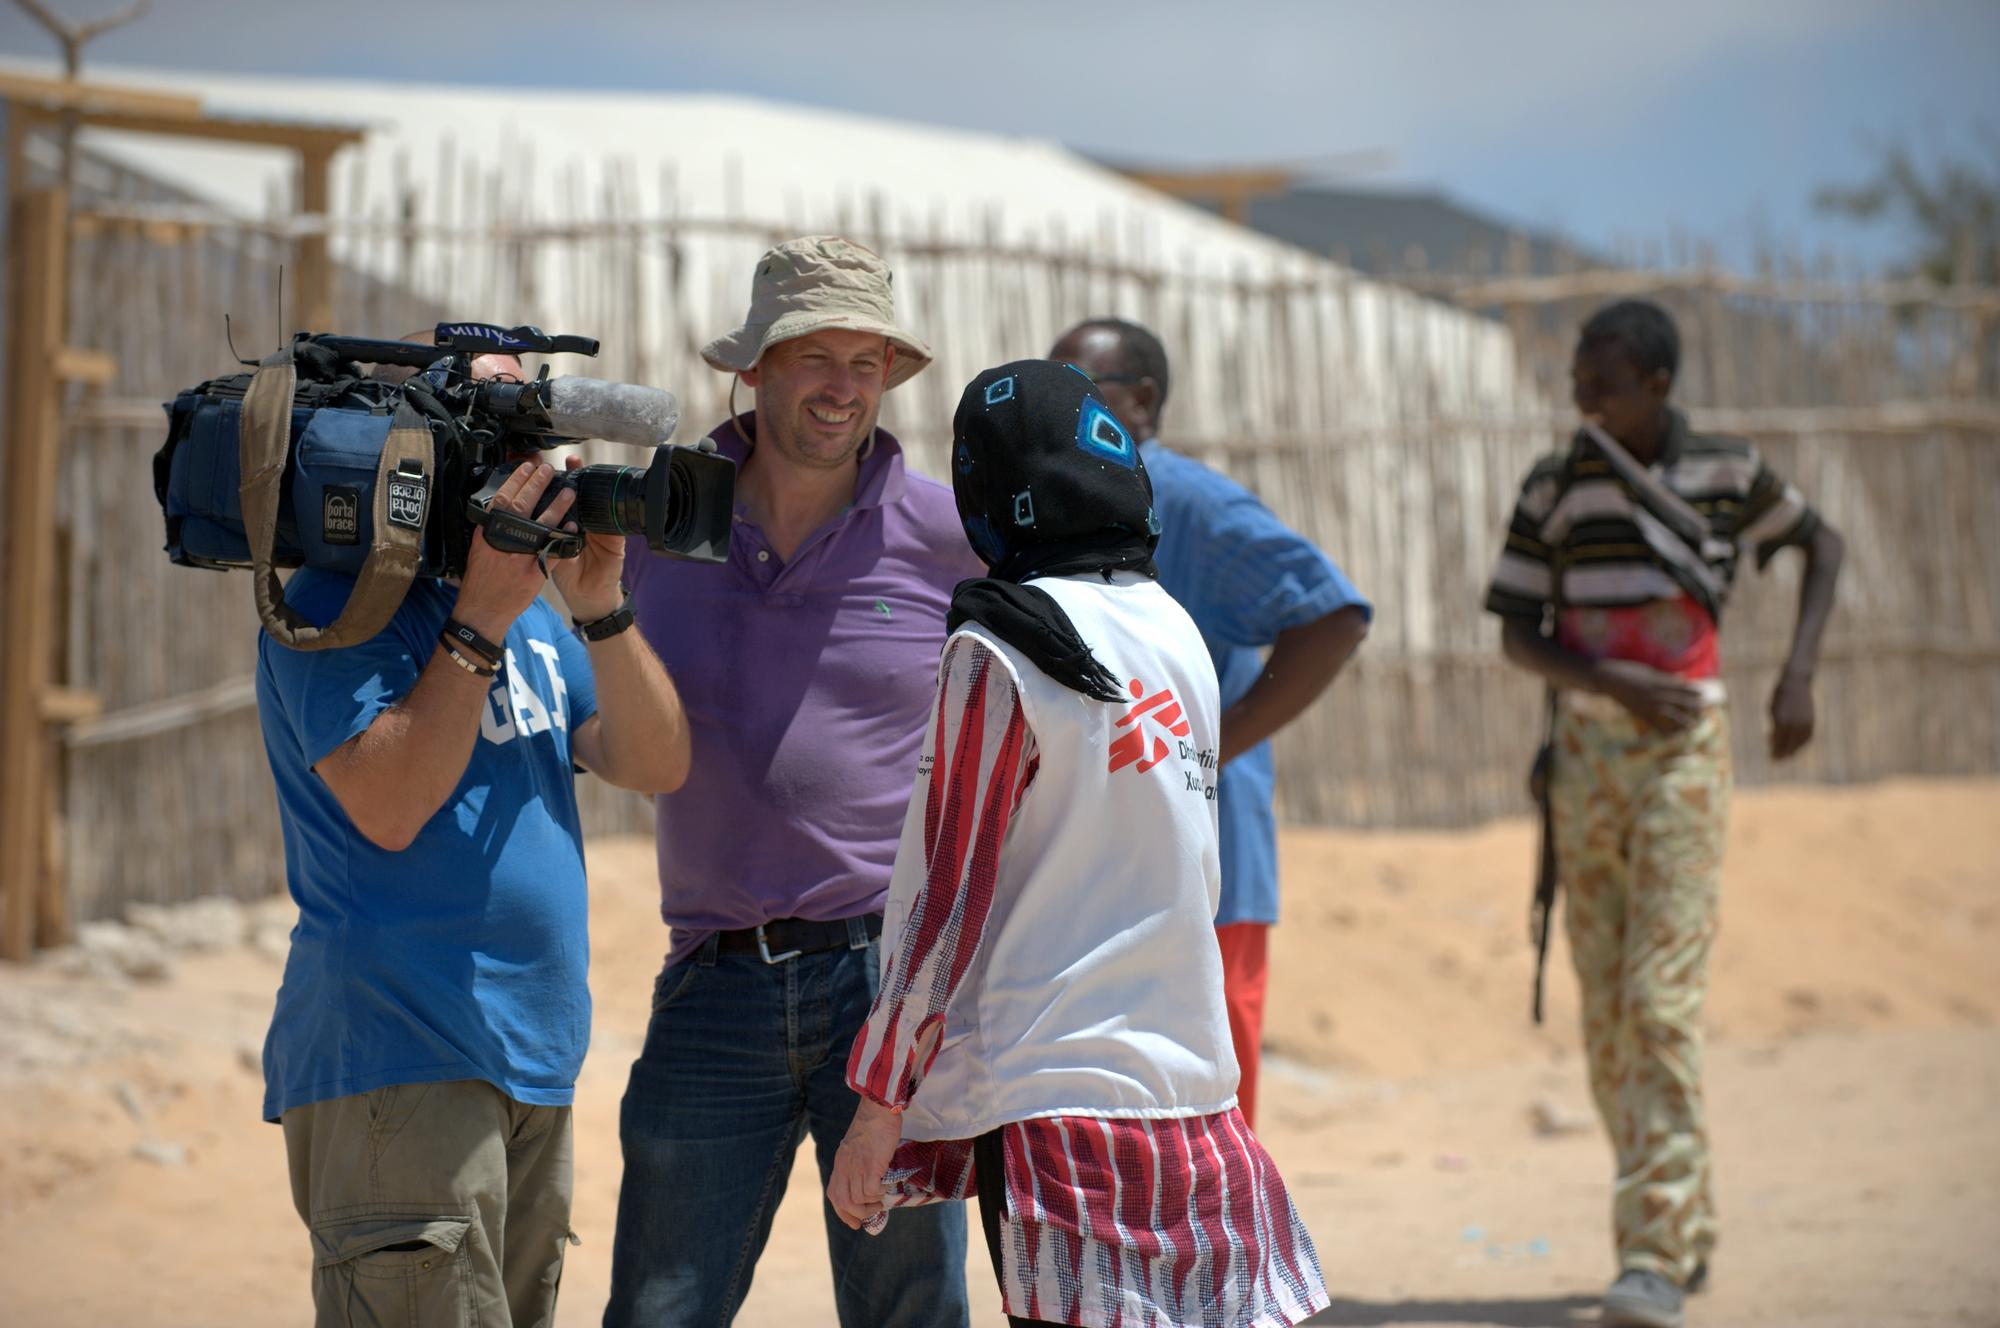 Two men, one with a camera, talk to a woman wearing an MSF shirt and a head scarf. Two men walk in the background, one of them carries a gun.